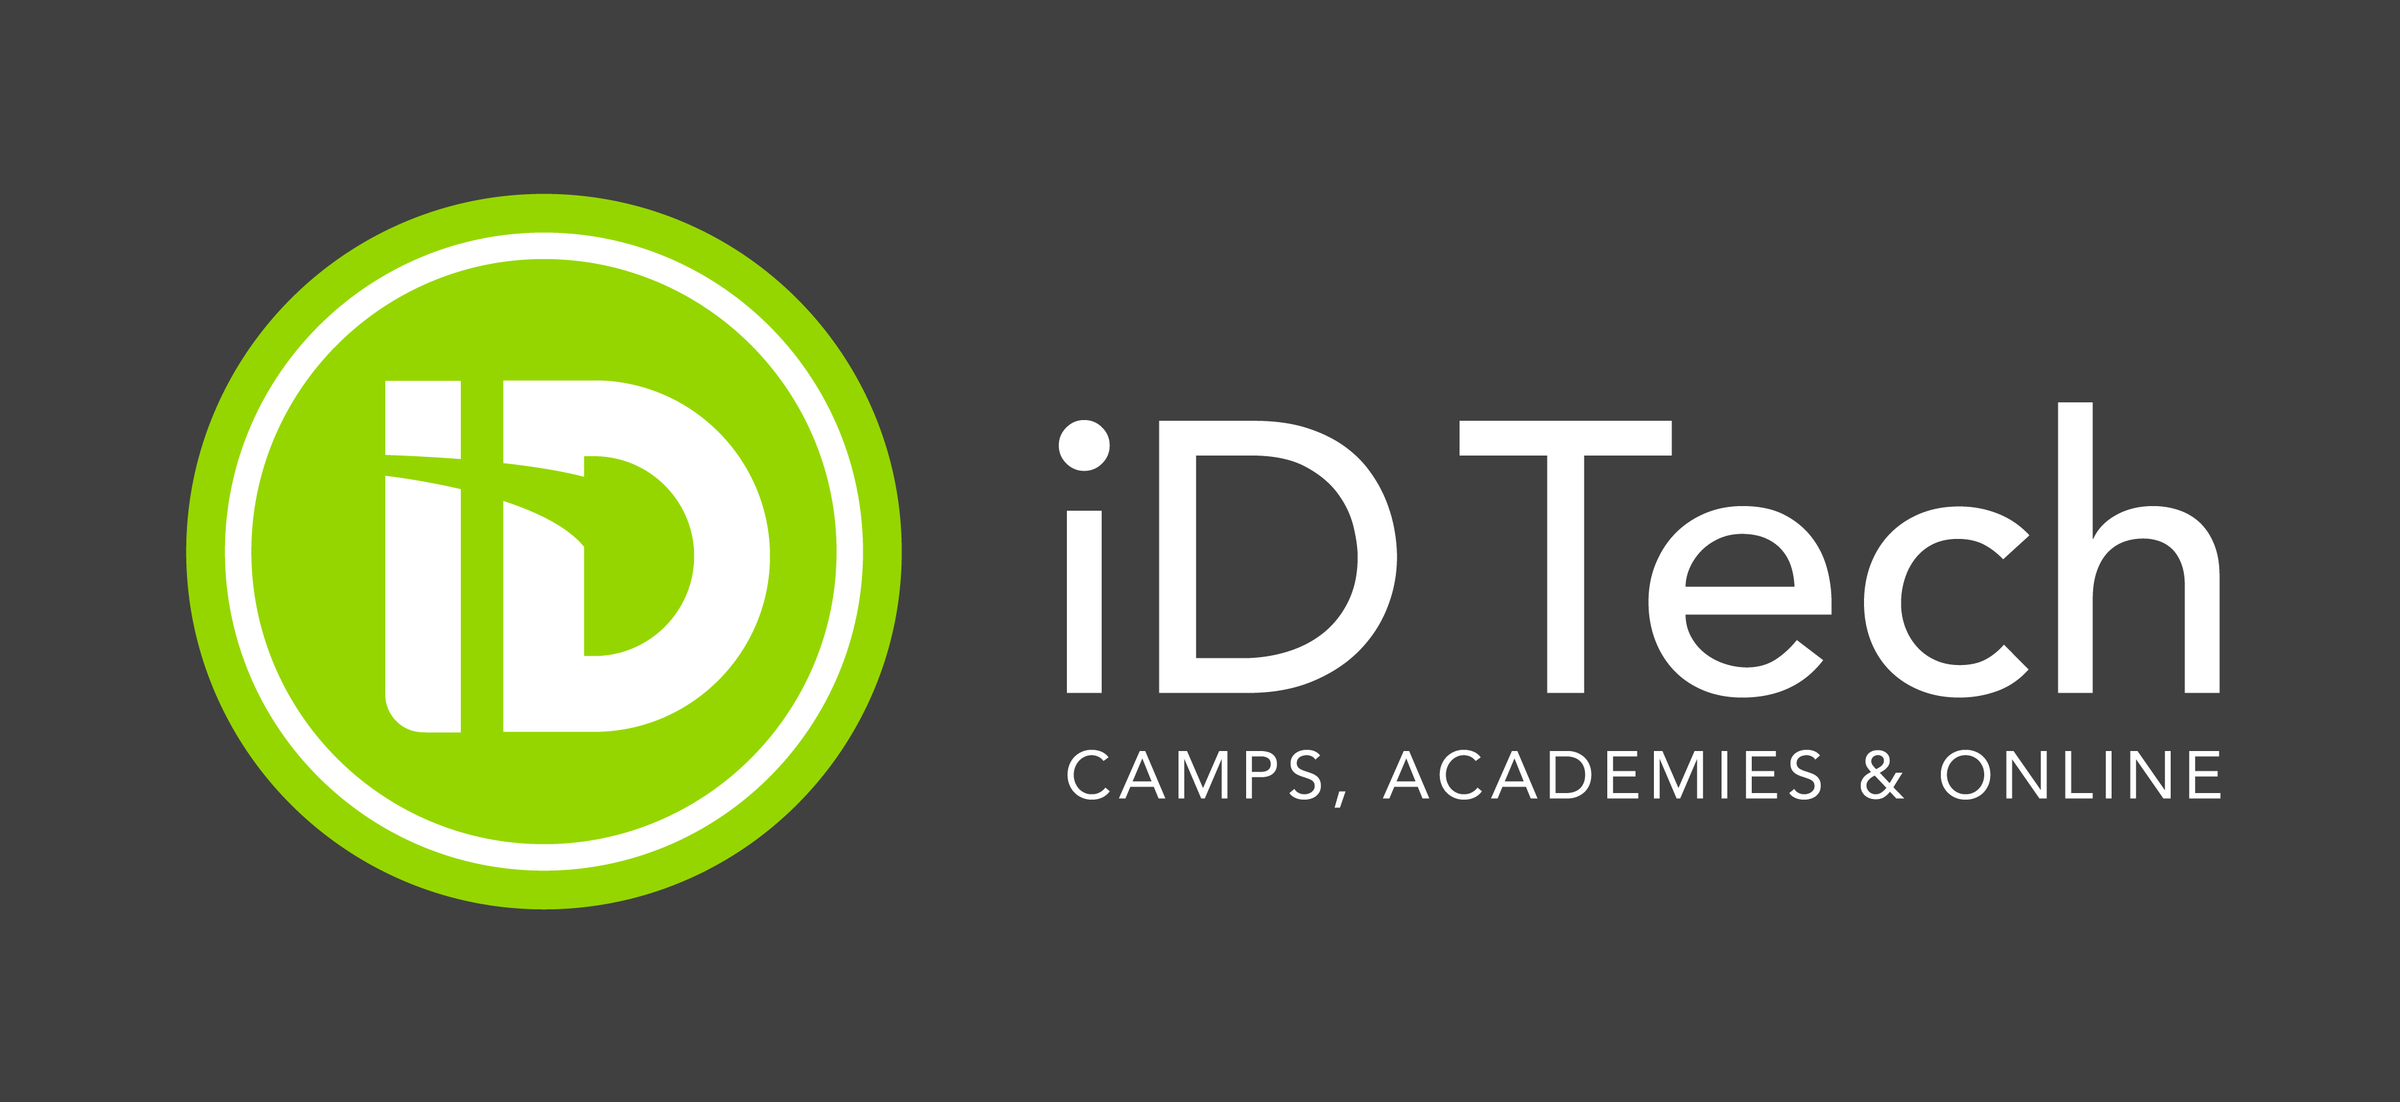 iD Tech Camps: #1 in STEM Education - Held at California State University, Long Beach